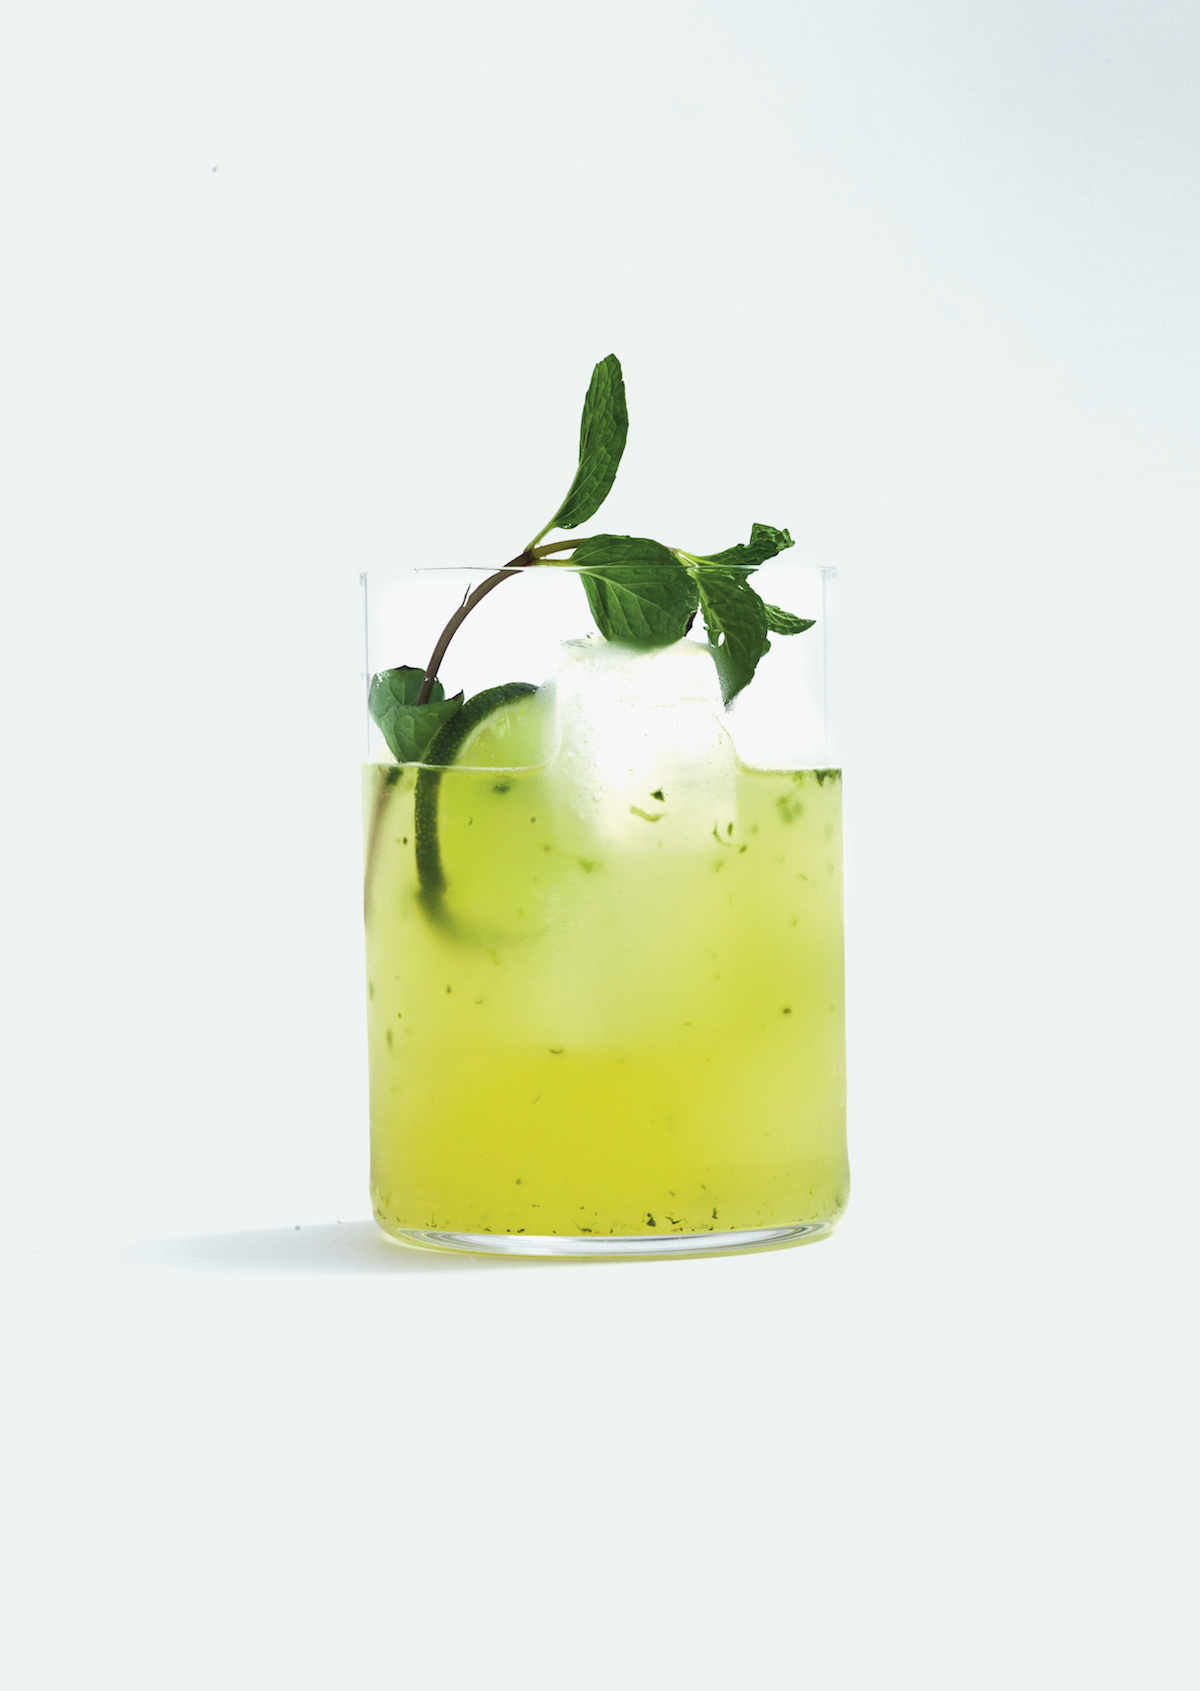 Non-alcoholic mojito: mocktails &quot;width =&quot; 1200 &quot;height =&quot; 1691 &quot;/&gt; </figure> <h2> Make non-alcoholic Mojito </h2> <p> For this mojito bruise put the leaves in a shaker and add the syrup, lime juice and ice cream. Shake well. Fill with the gingerale, strain and pour into a glass full of ice cubes. Finish with a sprig of mint and a slice of lime. </p> <p> So in less than five minutes you have a great alcohol-free drink on the table that is just as festive as champagne or wine. We bet that this drink is not only loved by pregnant women or drivers? </p> <figure class=